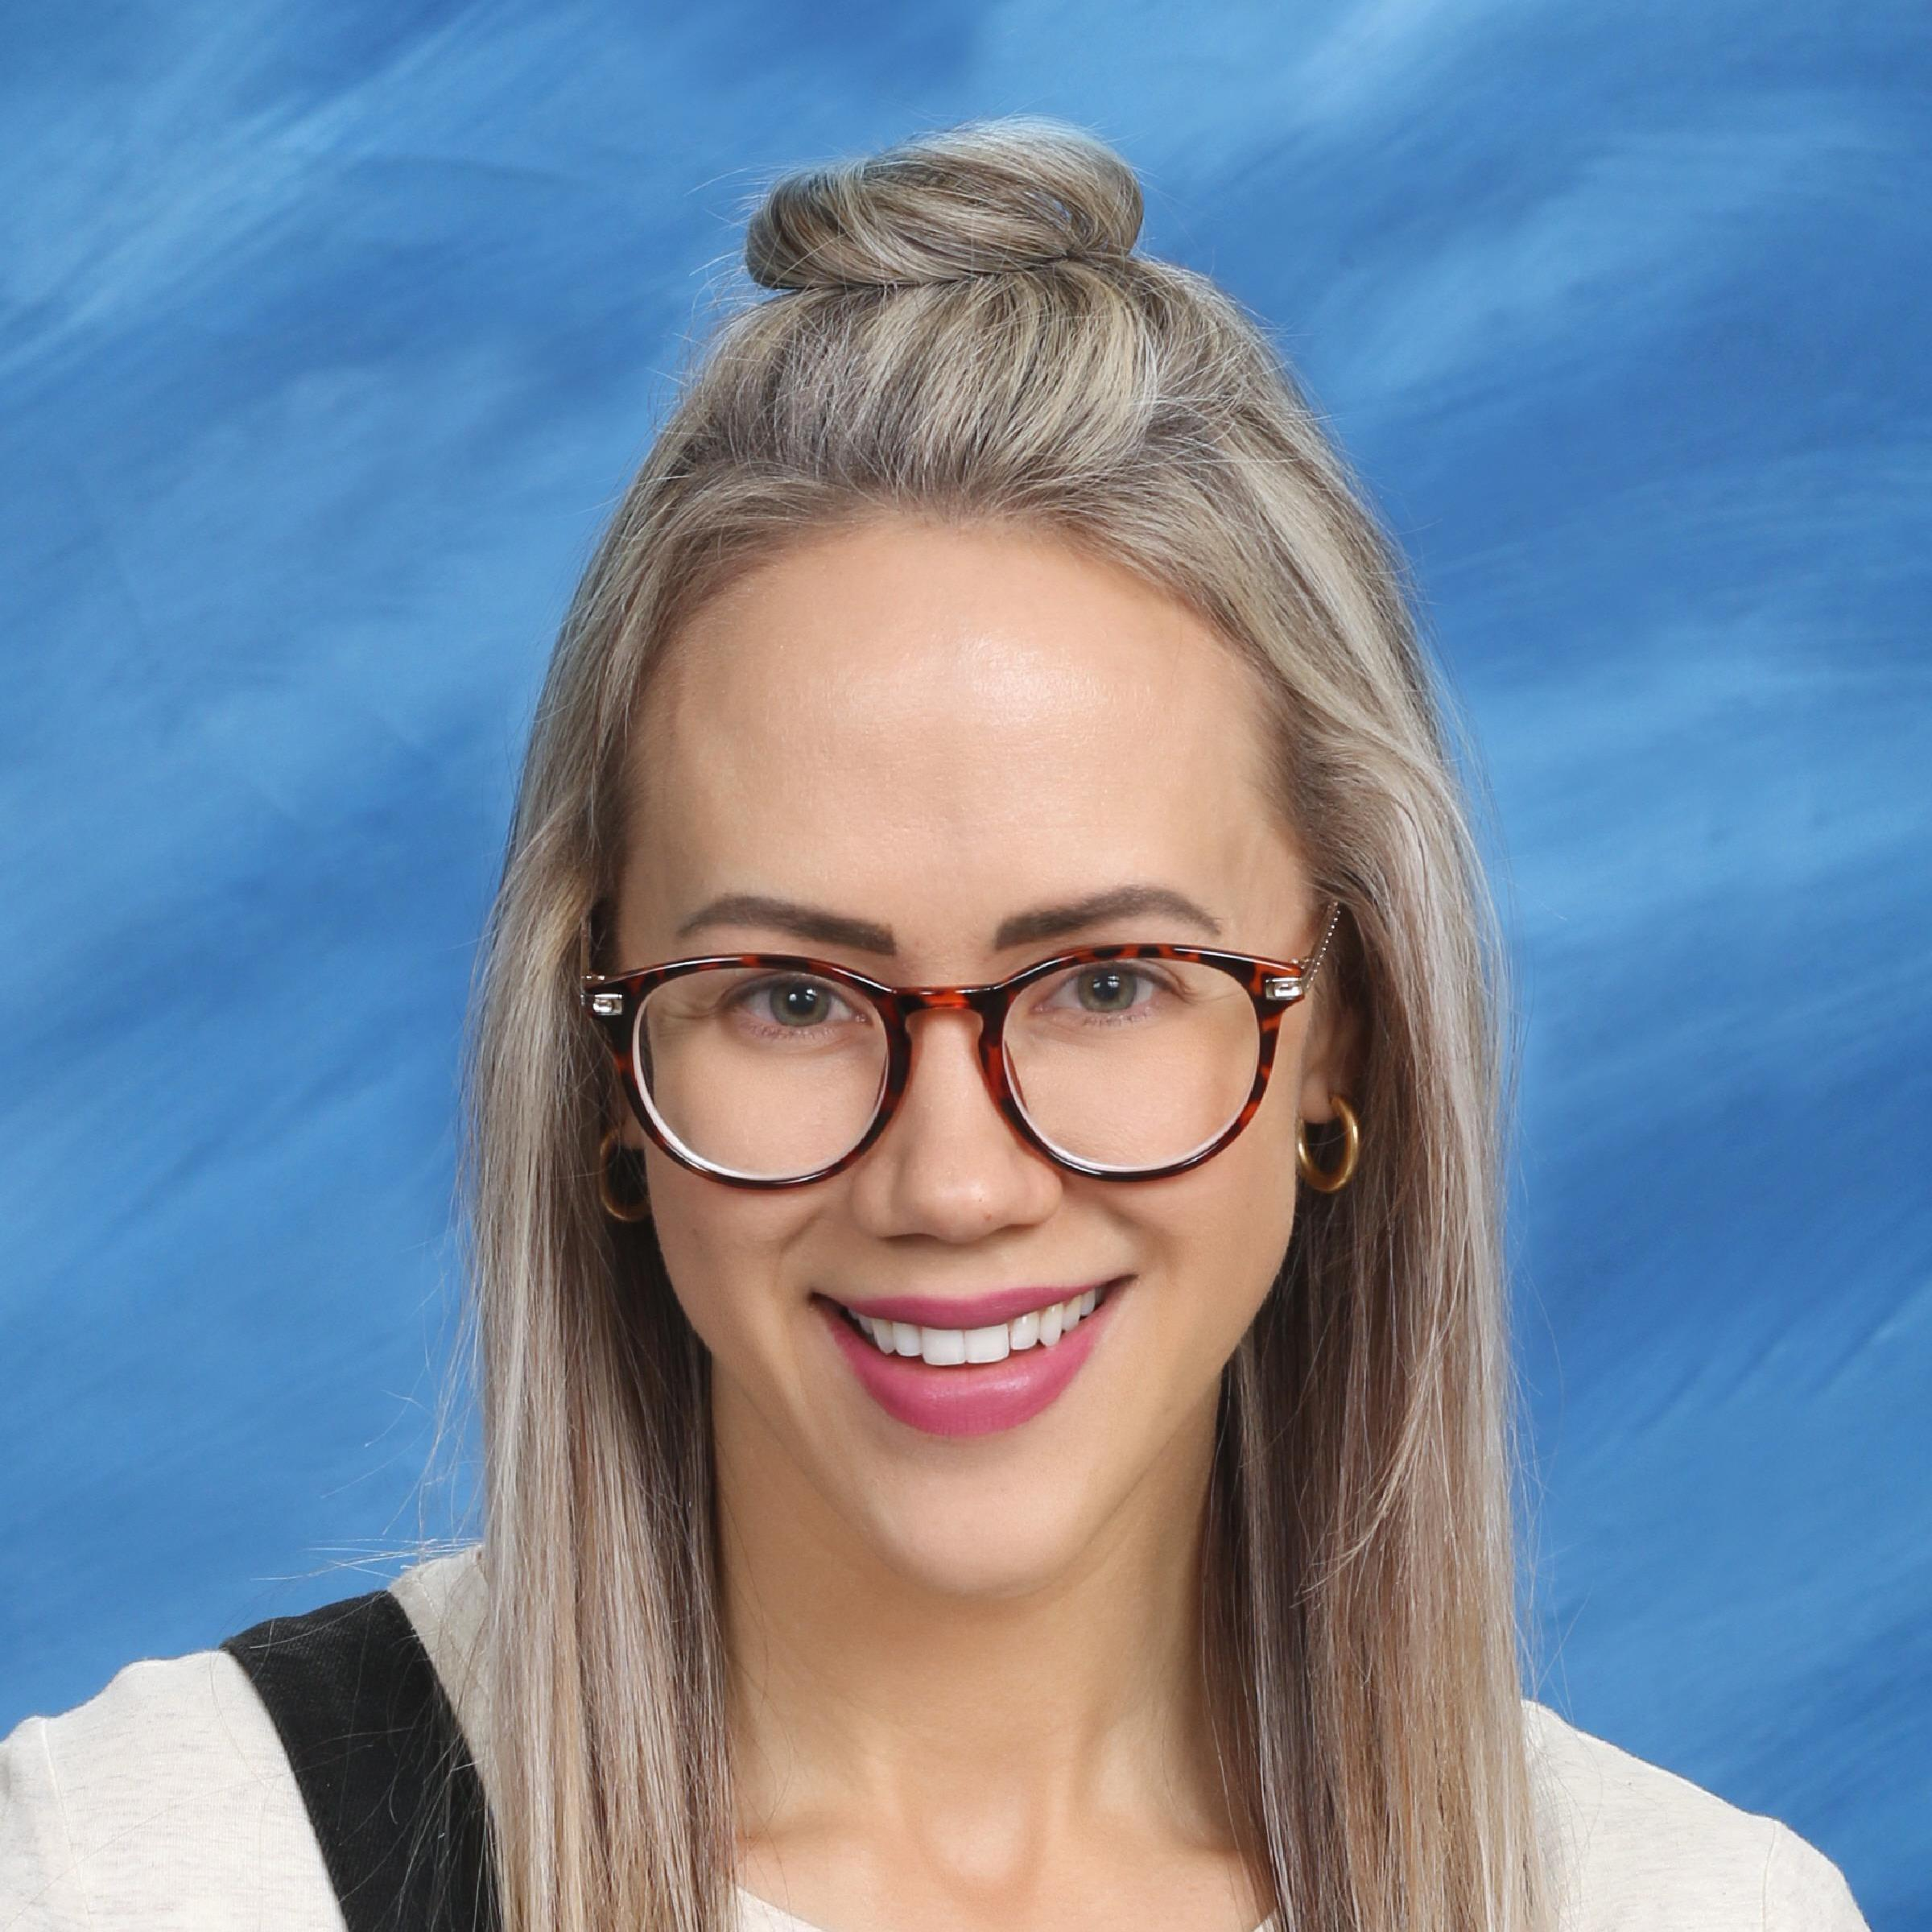 Sarah Orrock's Profile Photo